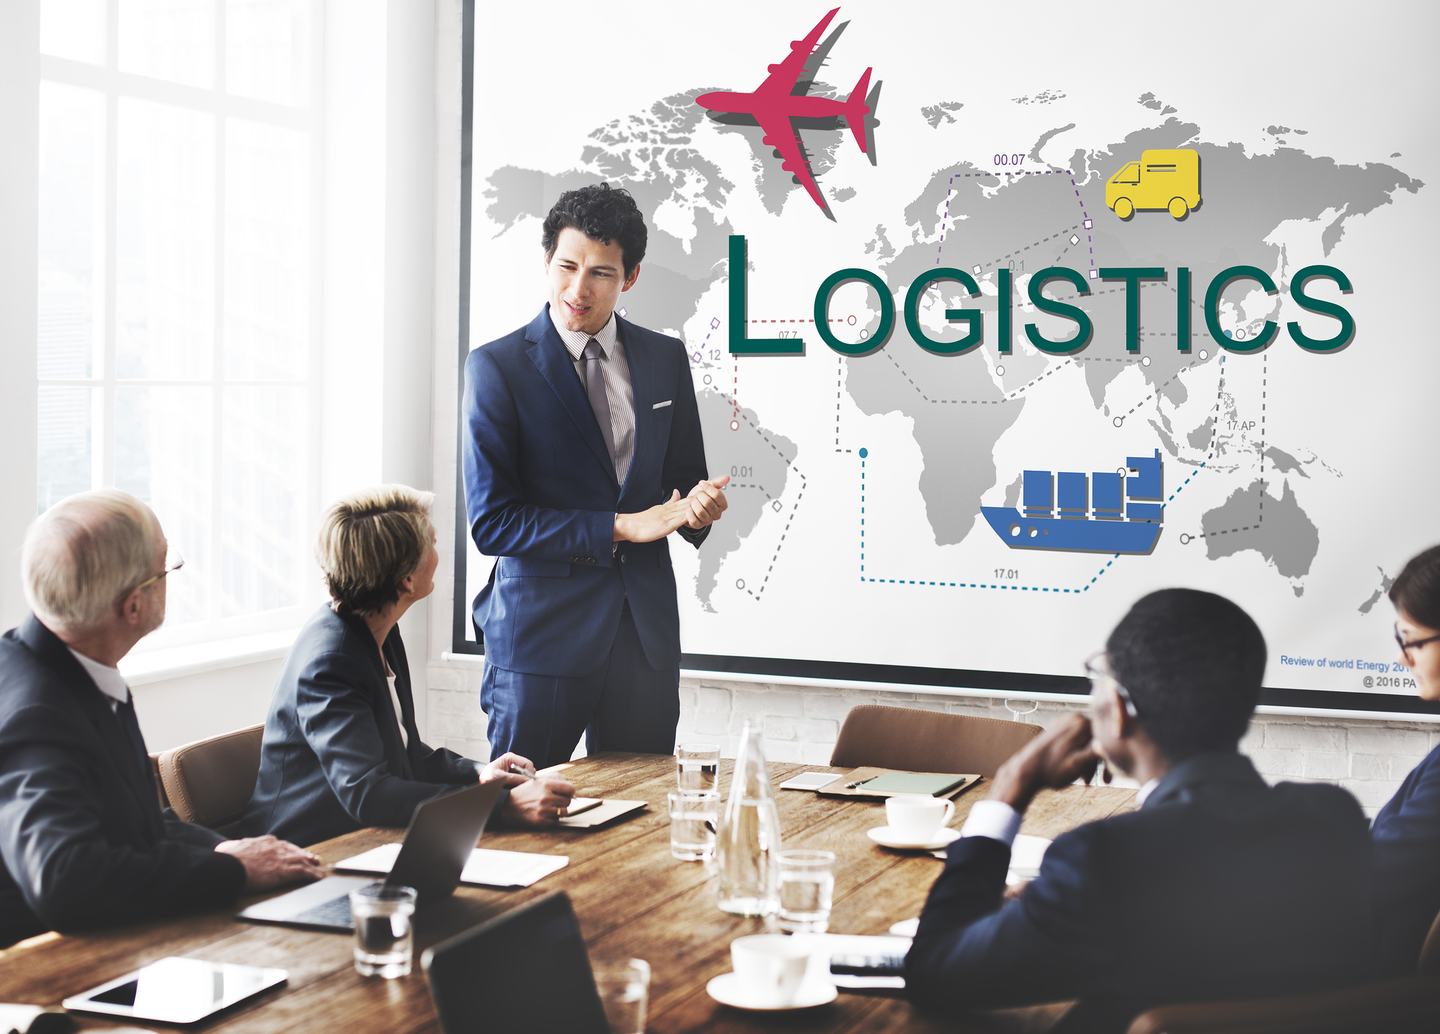 The reliance on GPS tracking devices that provide real-time location data from freight shipments, drivers, and transportation has become an even more critical operational requirement over the past two years as supply chains have grown. devastated by the effects of the COVID-19 crisis.